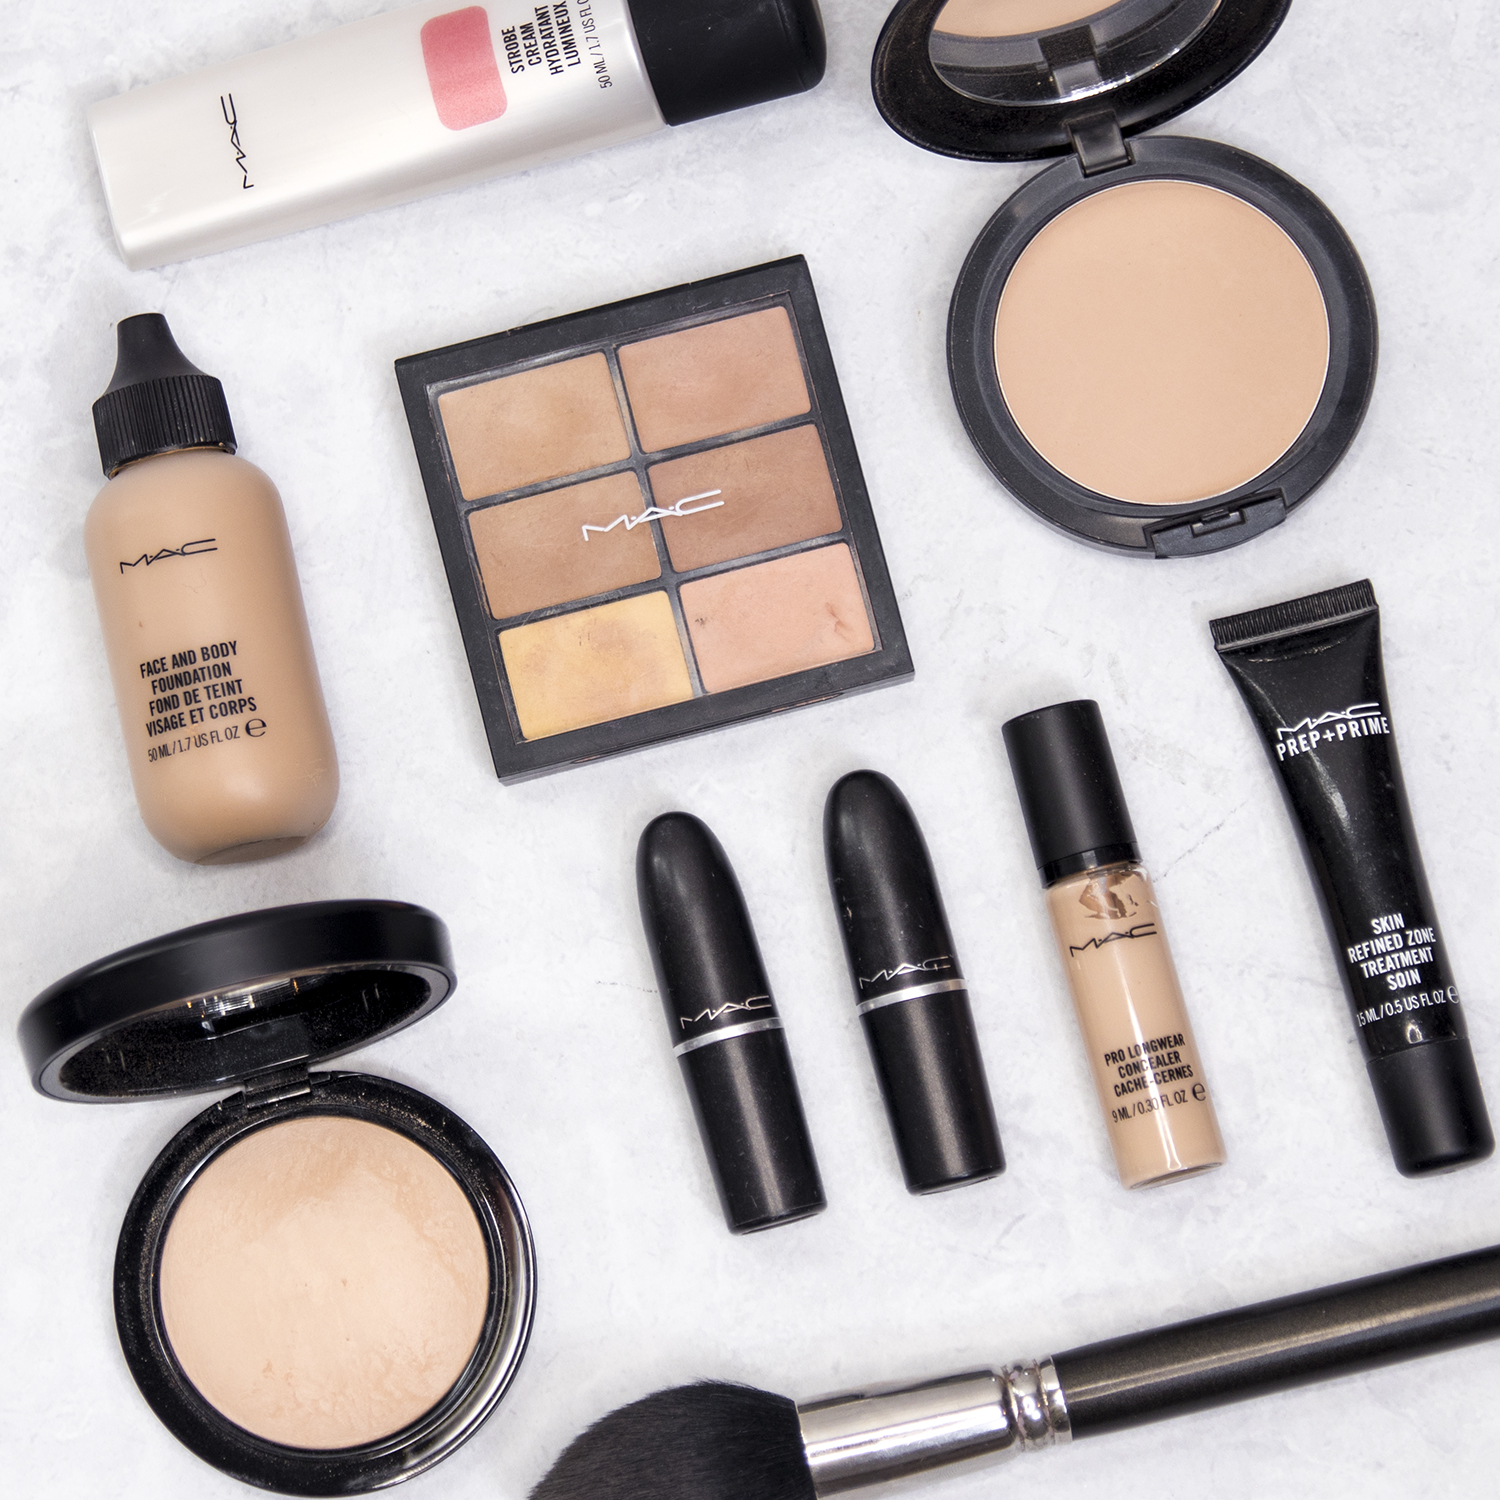 Bekend The Top Products From MAC Cosmetics According To An Ex MAC Artist @HX61